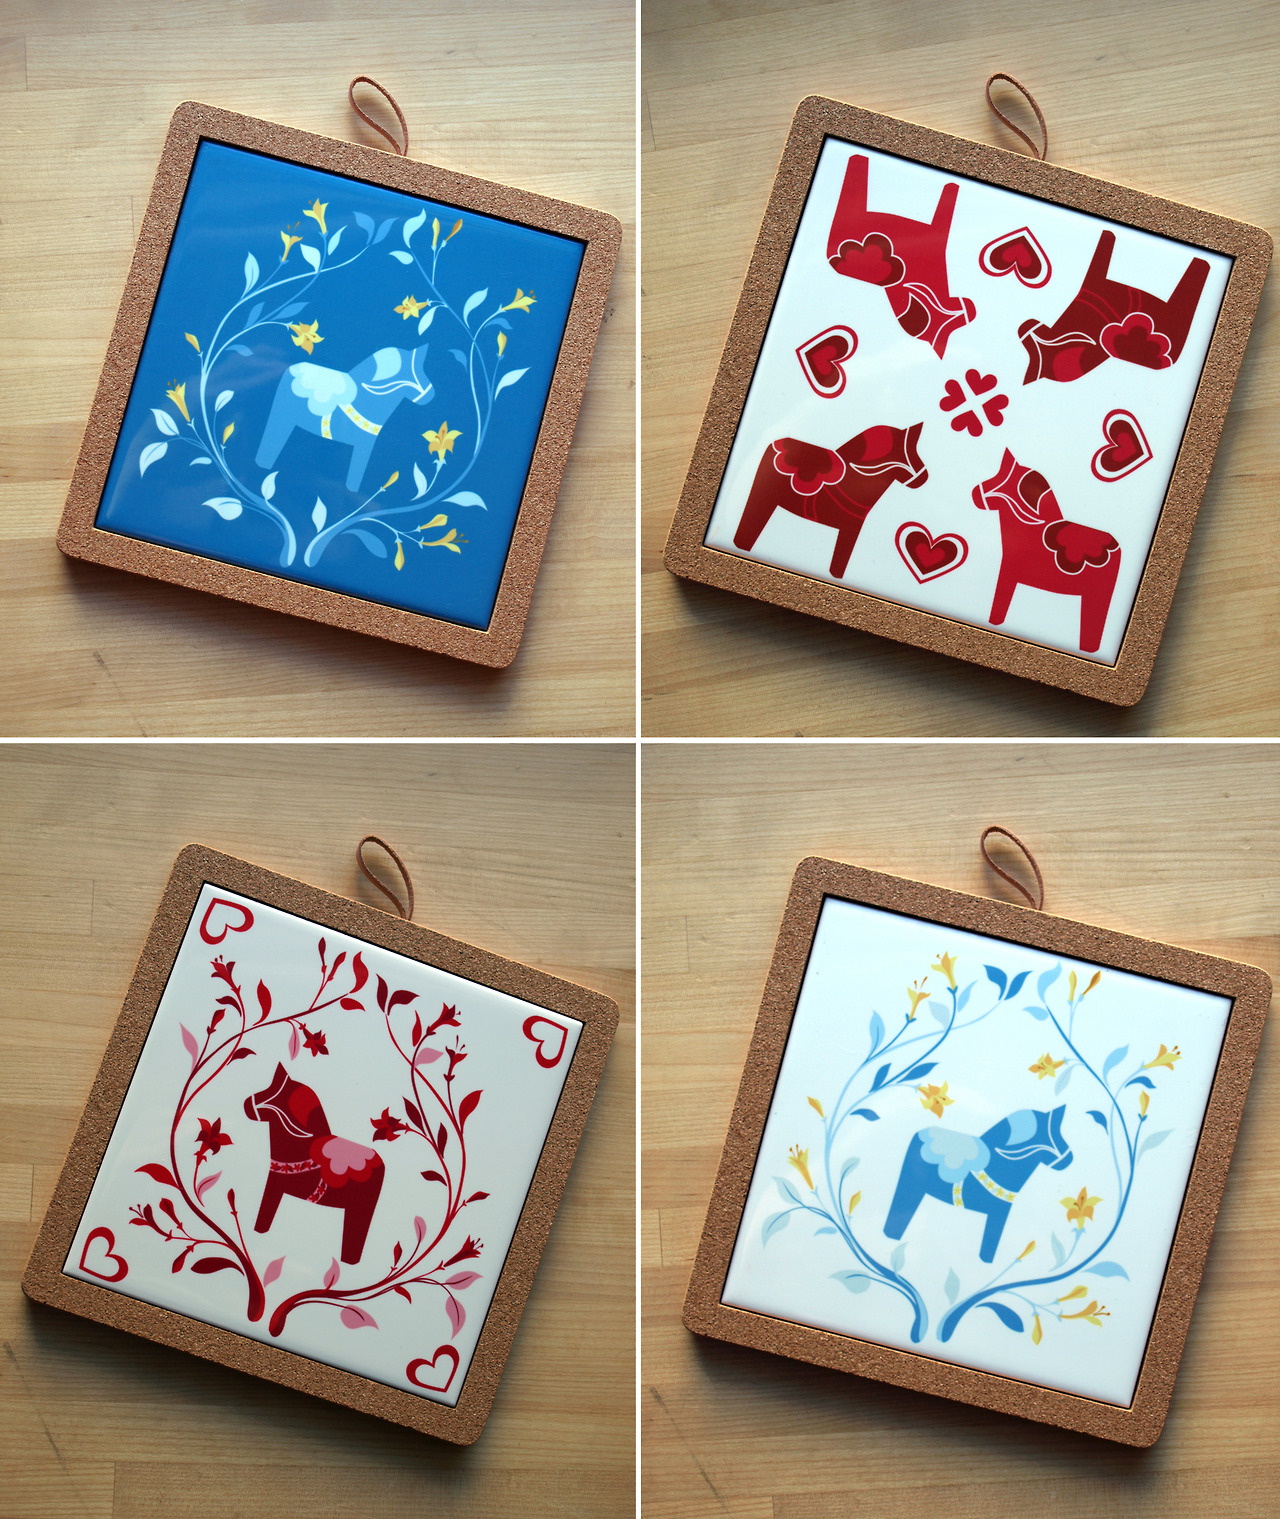 I've set up each trivet listing in the shop to explain how to go about requesting your tile trivet be set in the cork backing, with photos of each, while the original tiles with just the cork feet are still available. (Essentially, just contact me!)